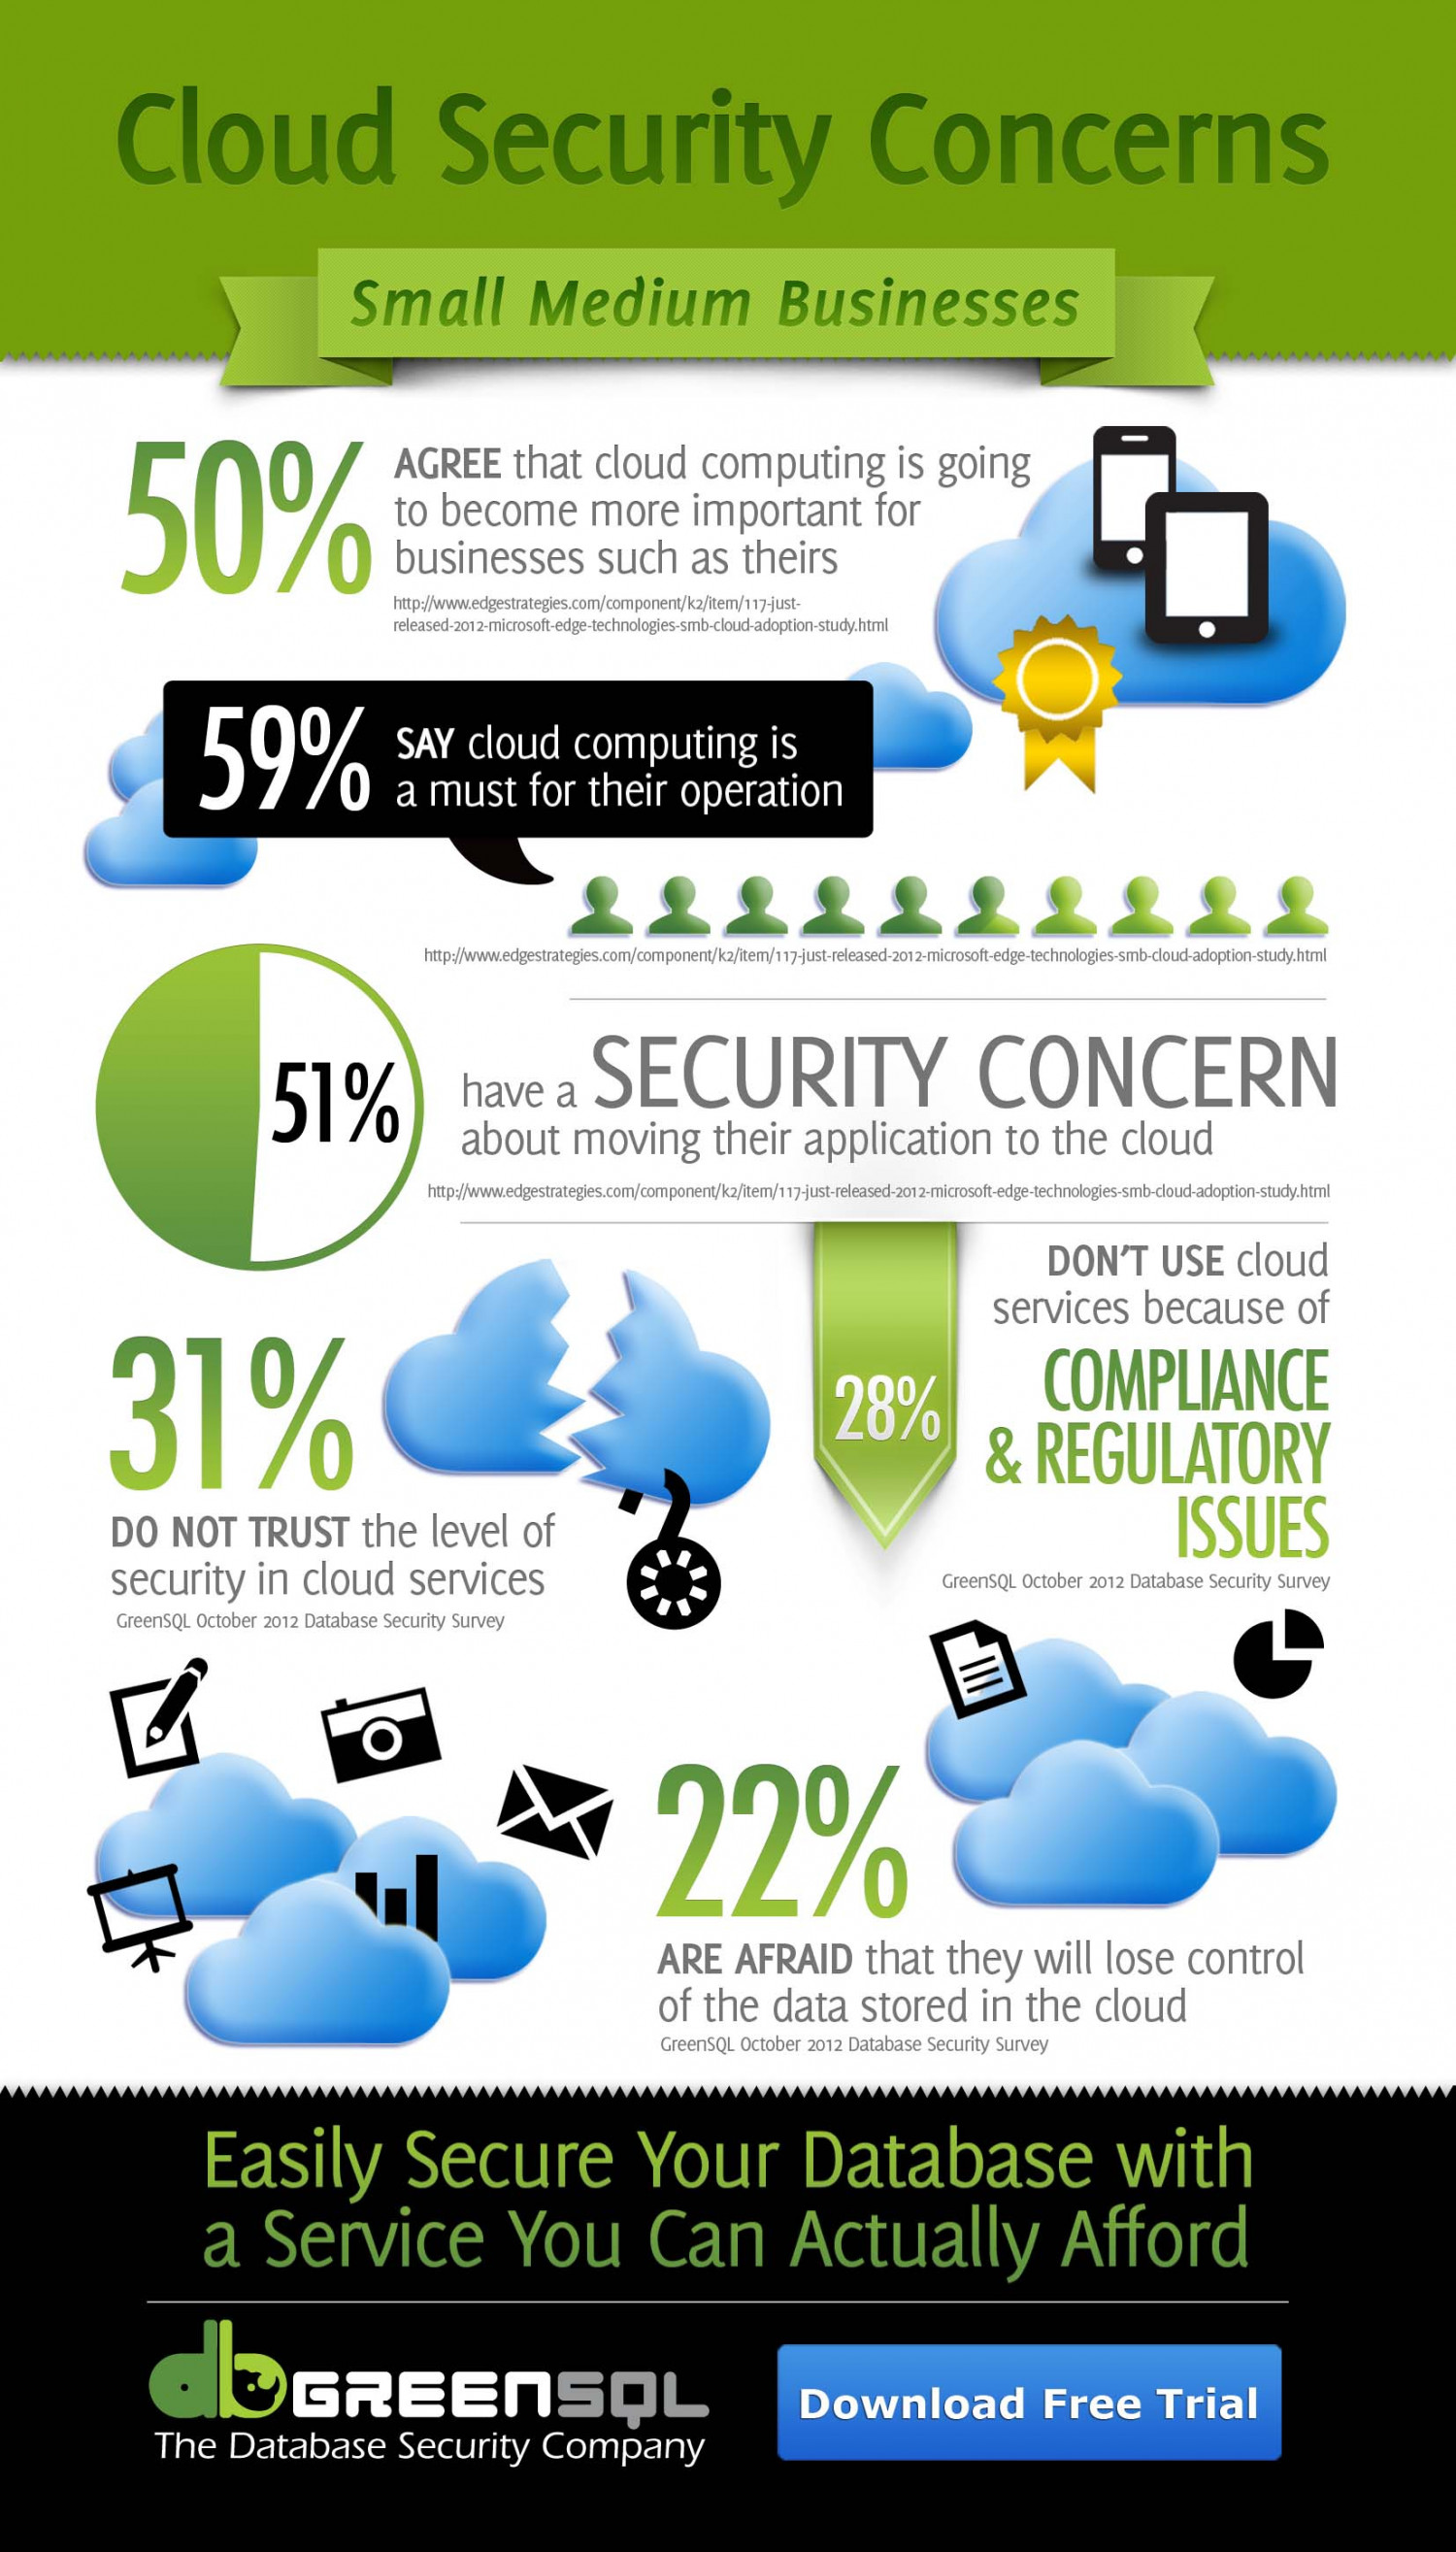 Cloud Security Concerns Infographic